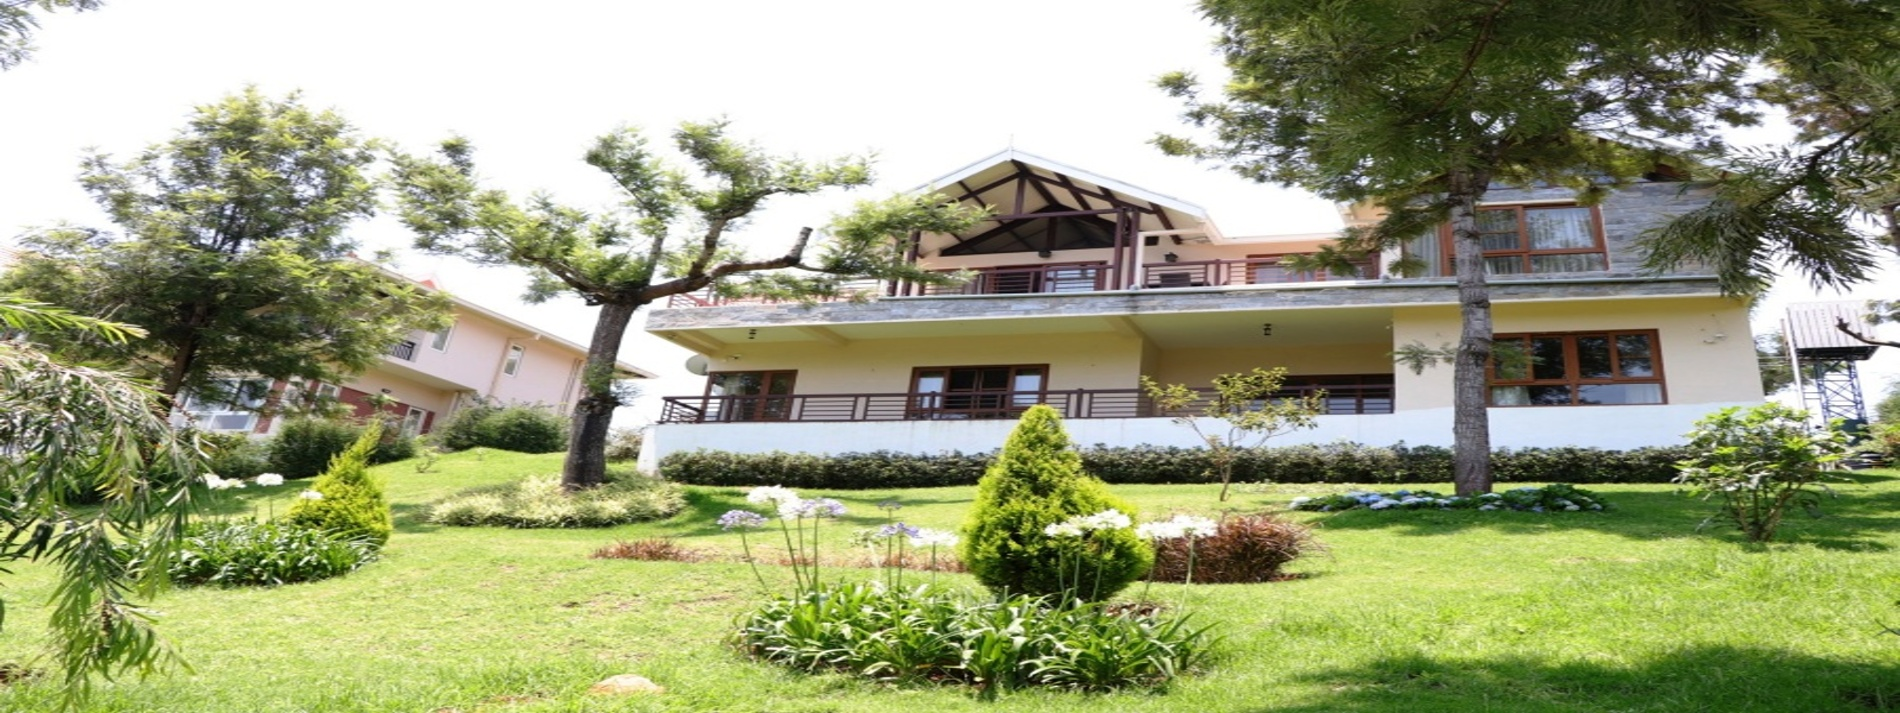 3 BHK Furnished Gated Cottage for sale in Coonoor